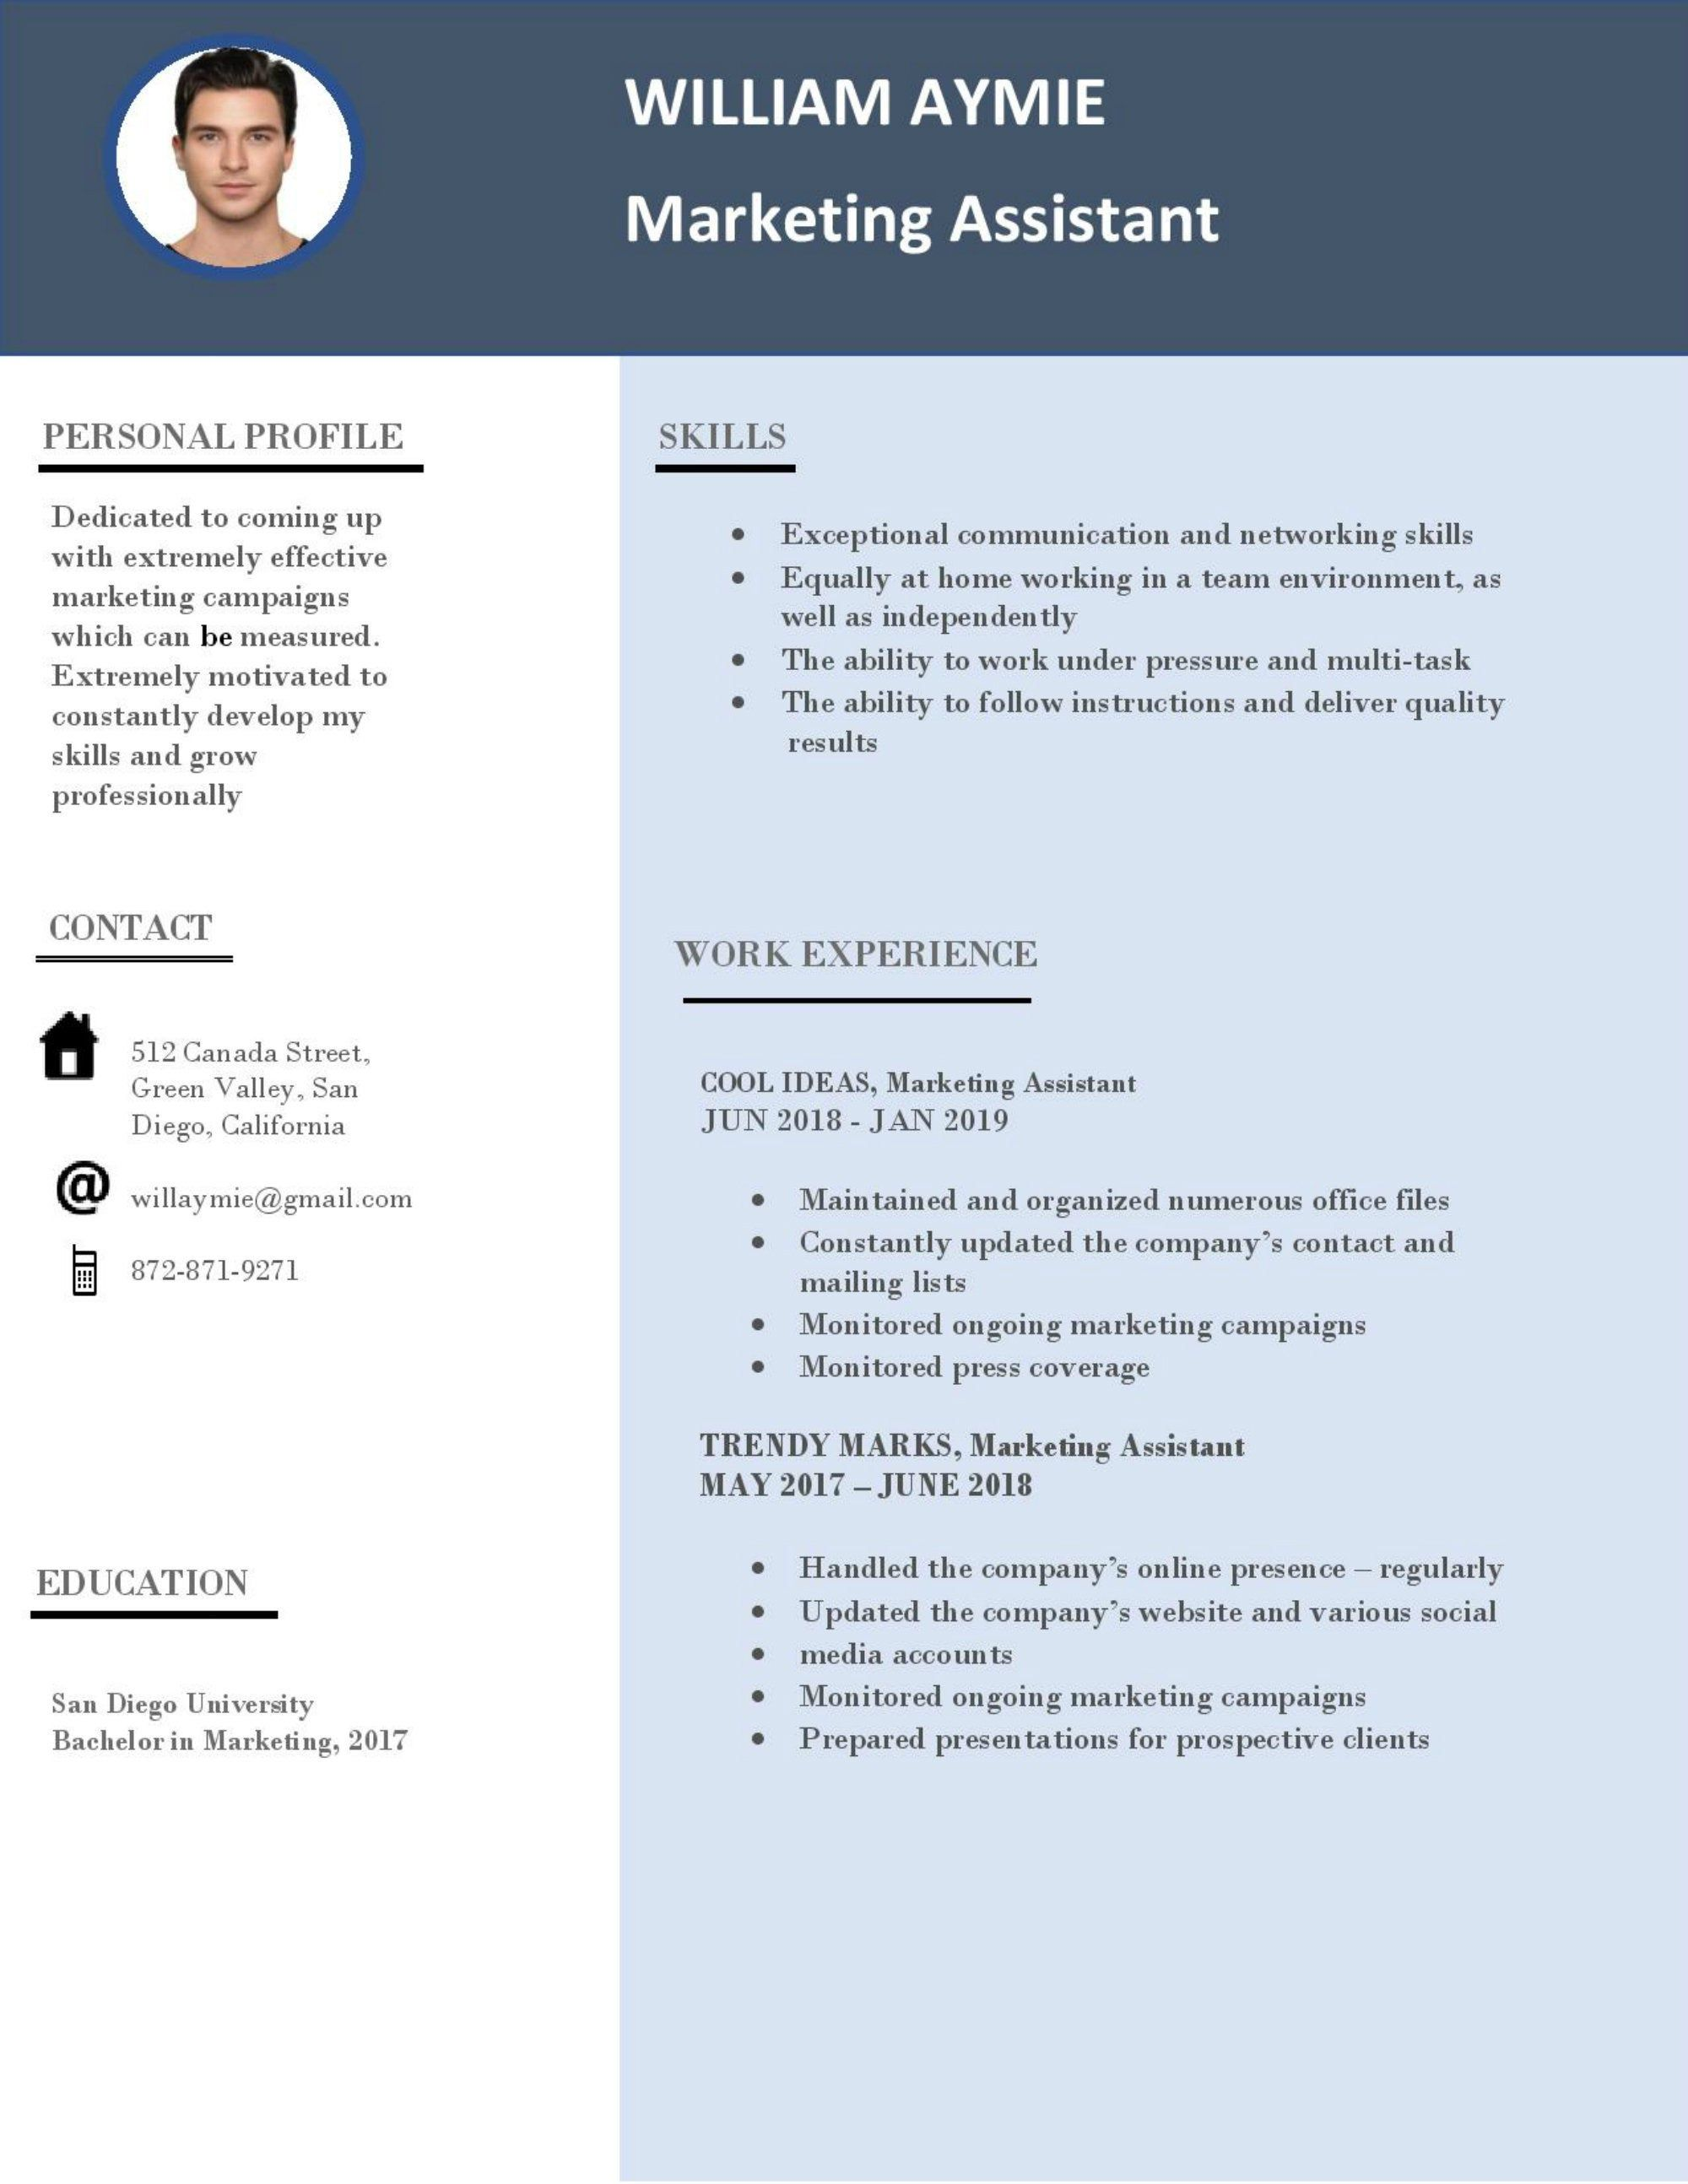 Resume For Marketing Assistant Ms Word Template Resume Cover Letter Minimalist Resume Tem Cover Letter For Resume Minimalist Resume Template Resume Template